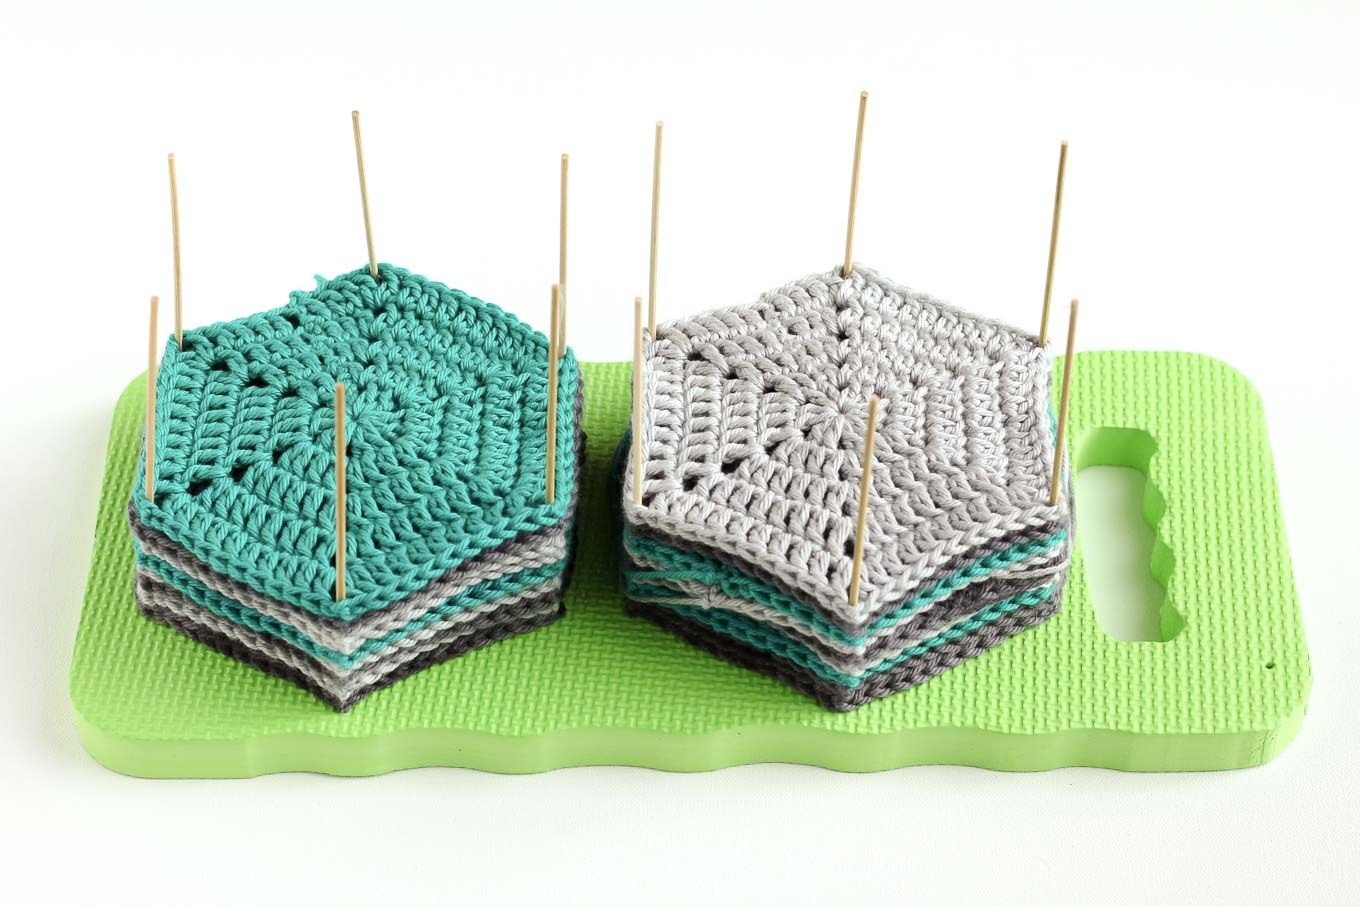 Knitting Granny Squares For Beginners : How to block crochet with easy diy blocking board